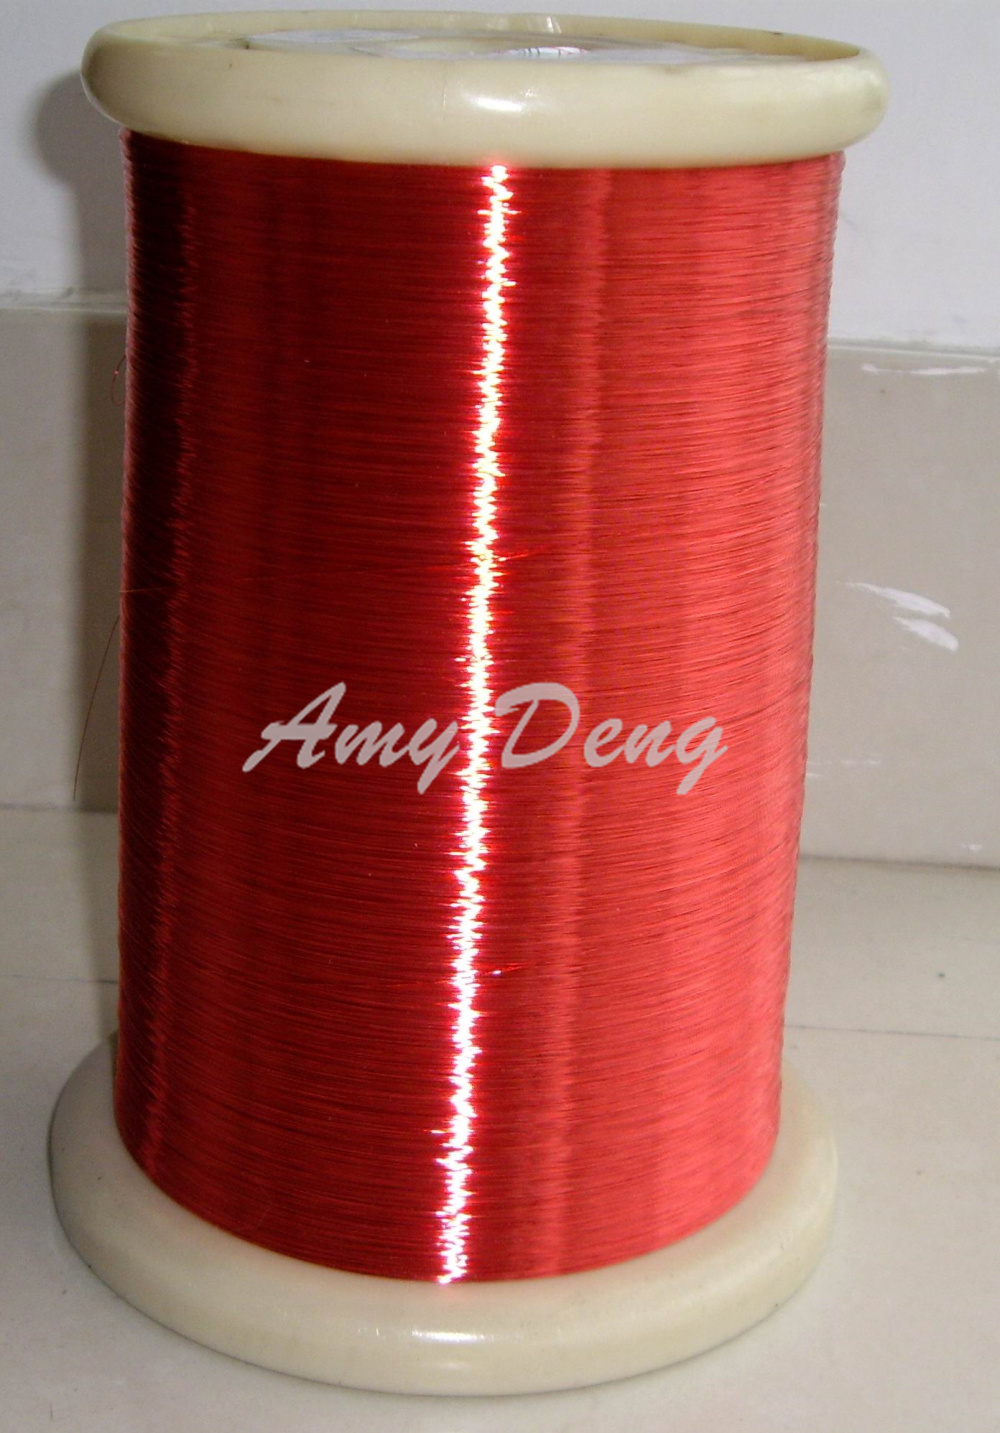 500grams/lot   0.29 Mm (red) New Polyurethane Enamel Covered Wire 2UEW QA-1-155  500g